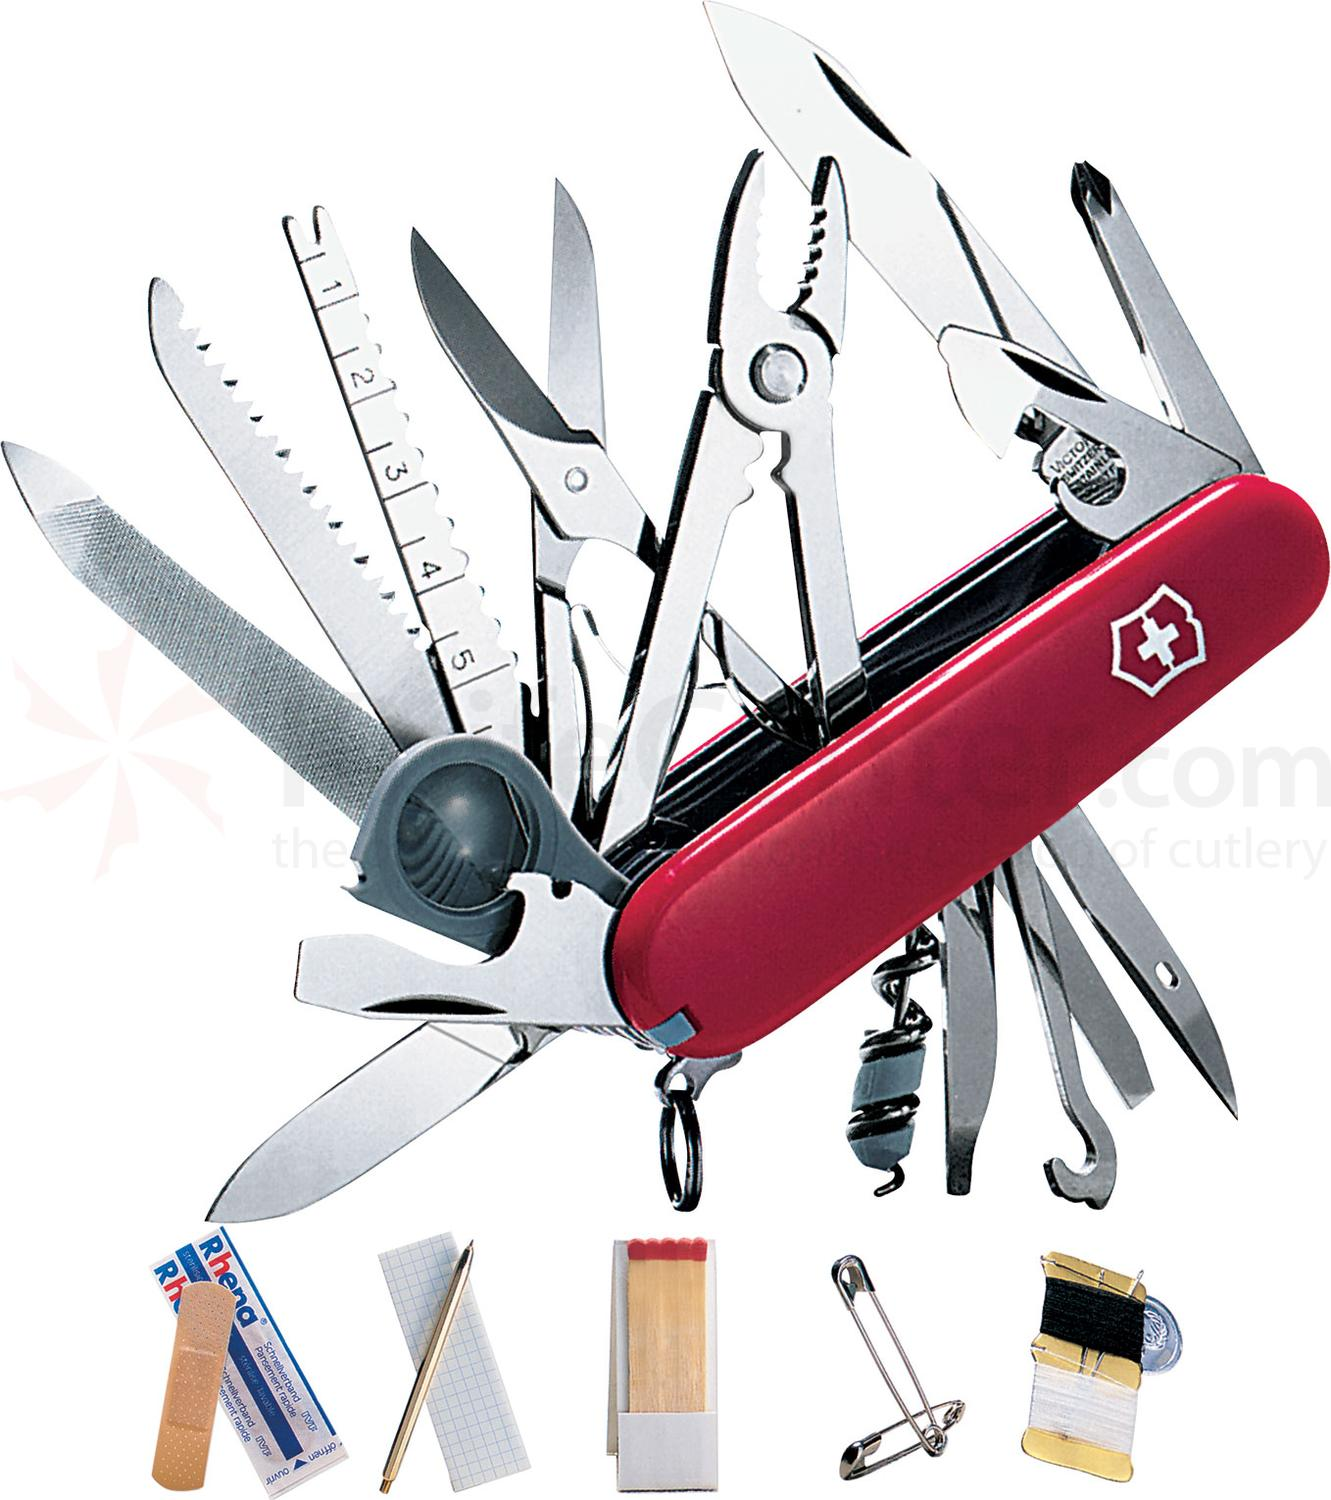 Victorinox Swiss Army Swisschamp Sos Multi Tool Red 3 31